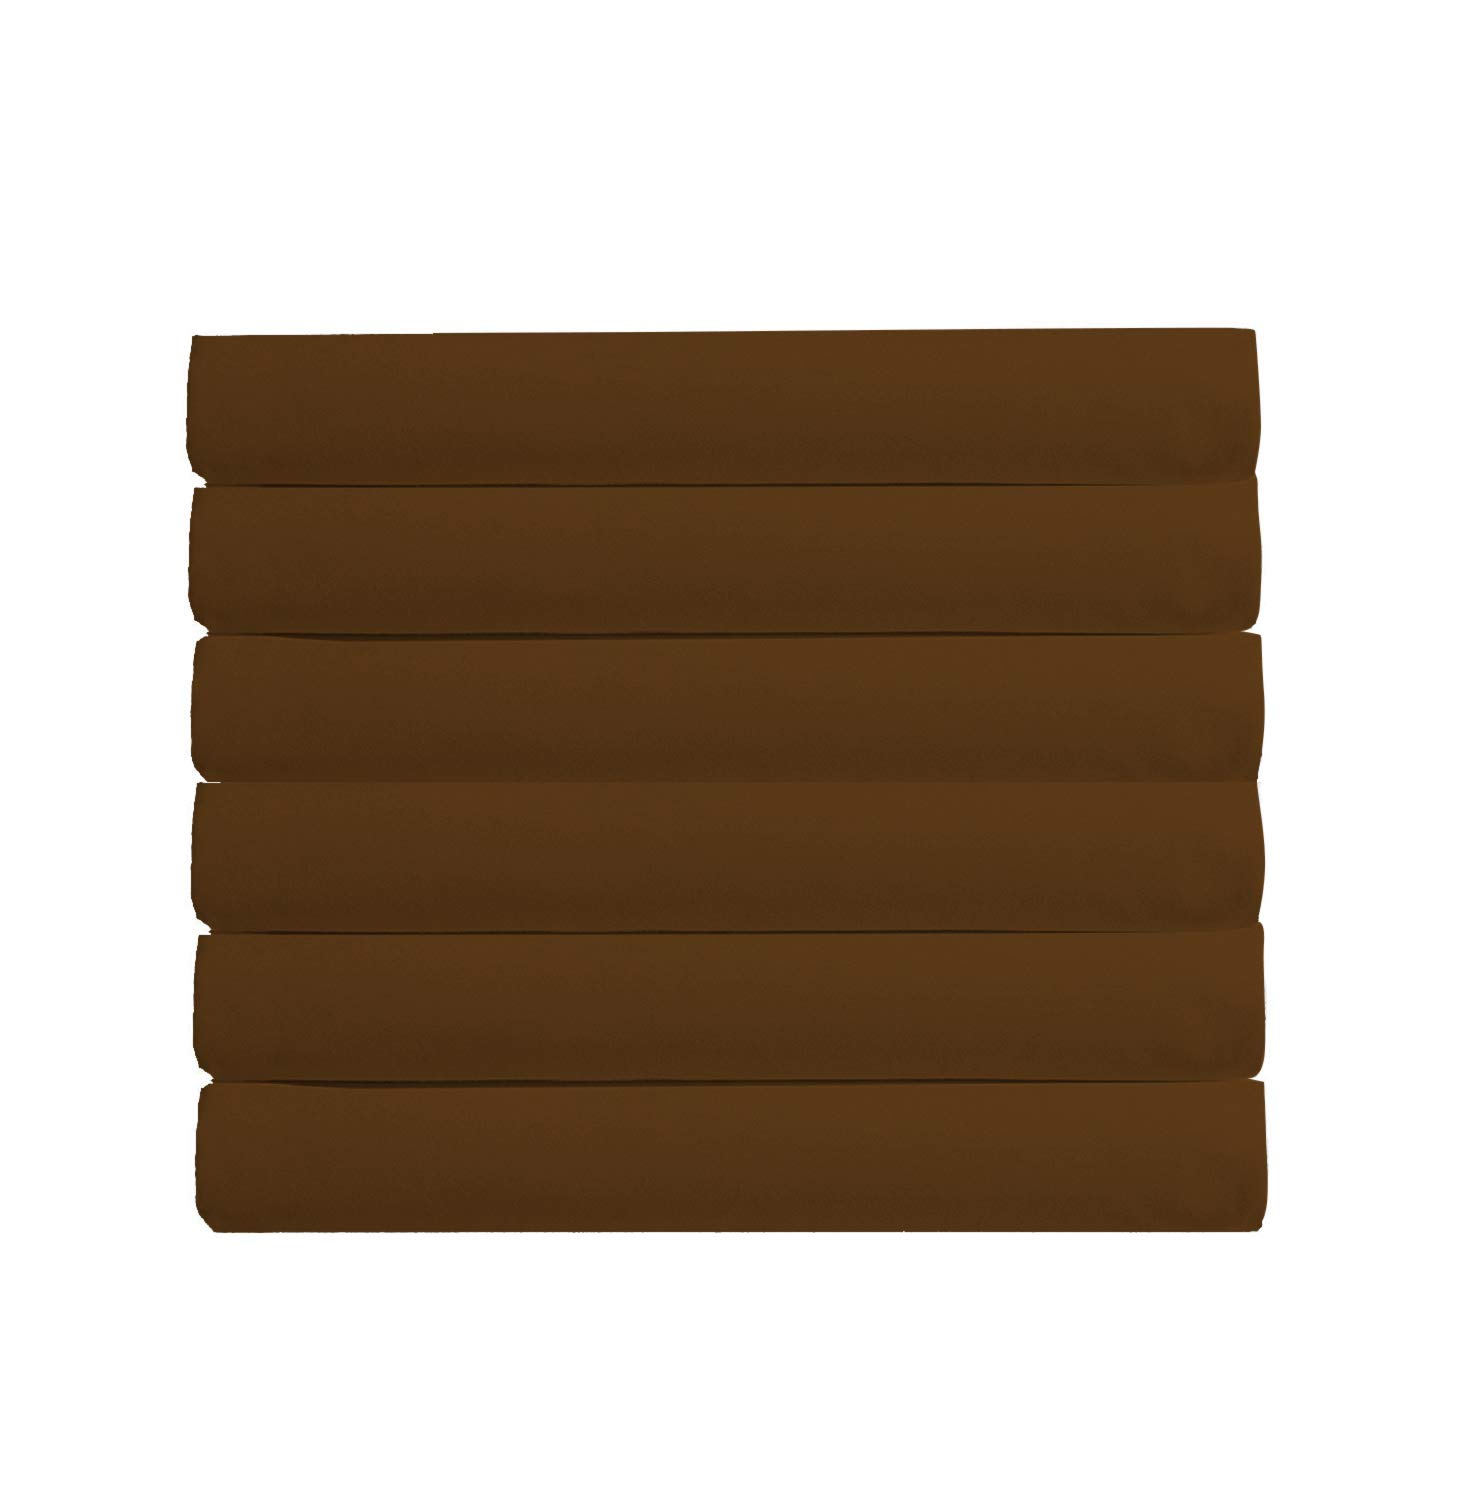 Mark Bedding Flat Sheet 6 Pack (Full Size, Solid Brown) - 600 Thread Count 100% Cotton Smooth & Durable - (Available in Bulk/Dozen) Best for Hotel, SPA, Hospitals